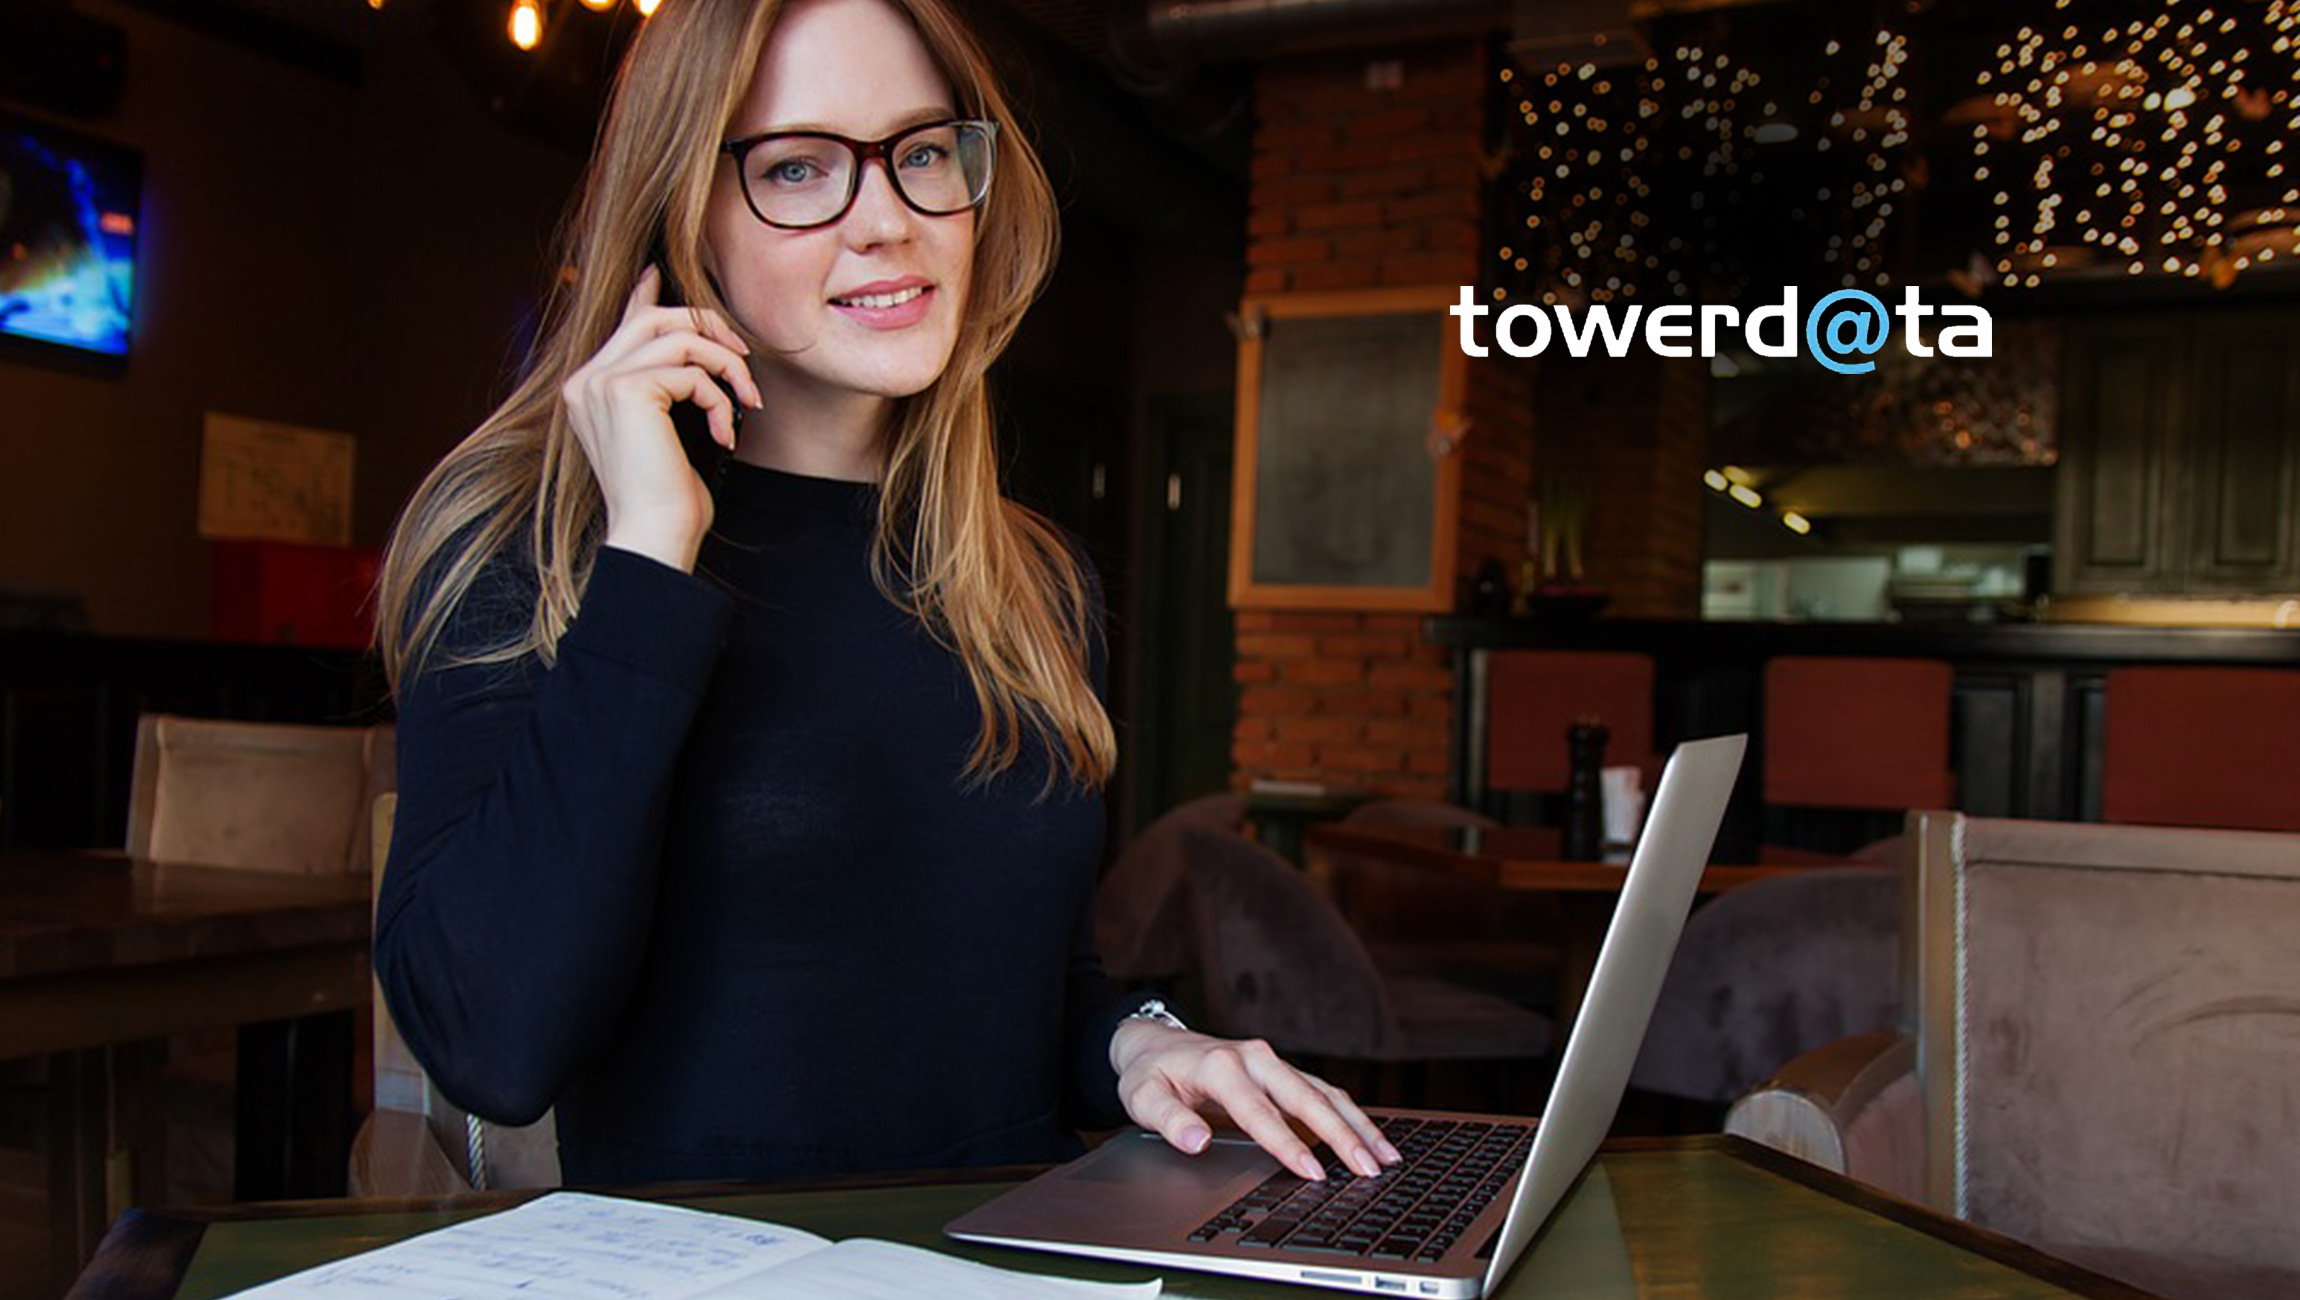 TowerData Acquires Premier Email Verification Provider Xverify